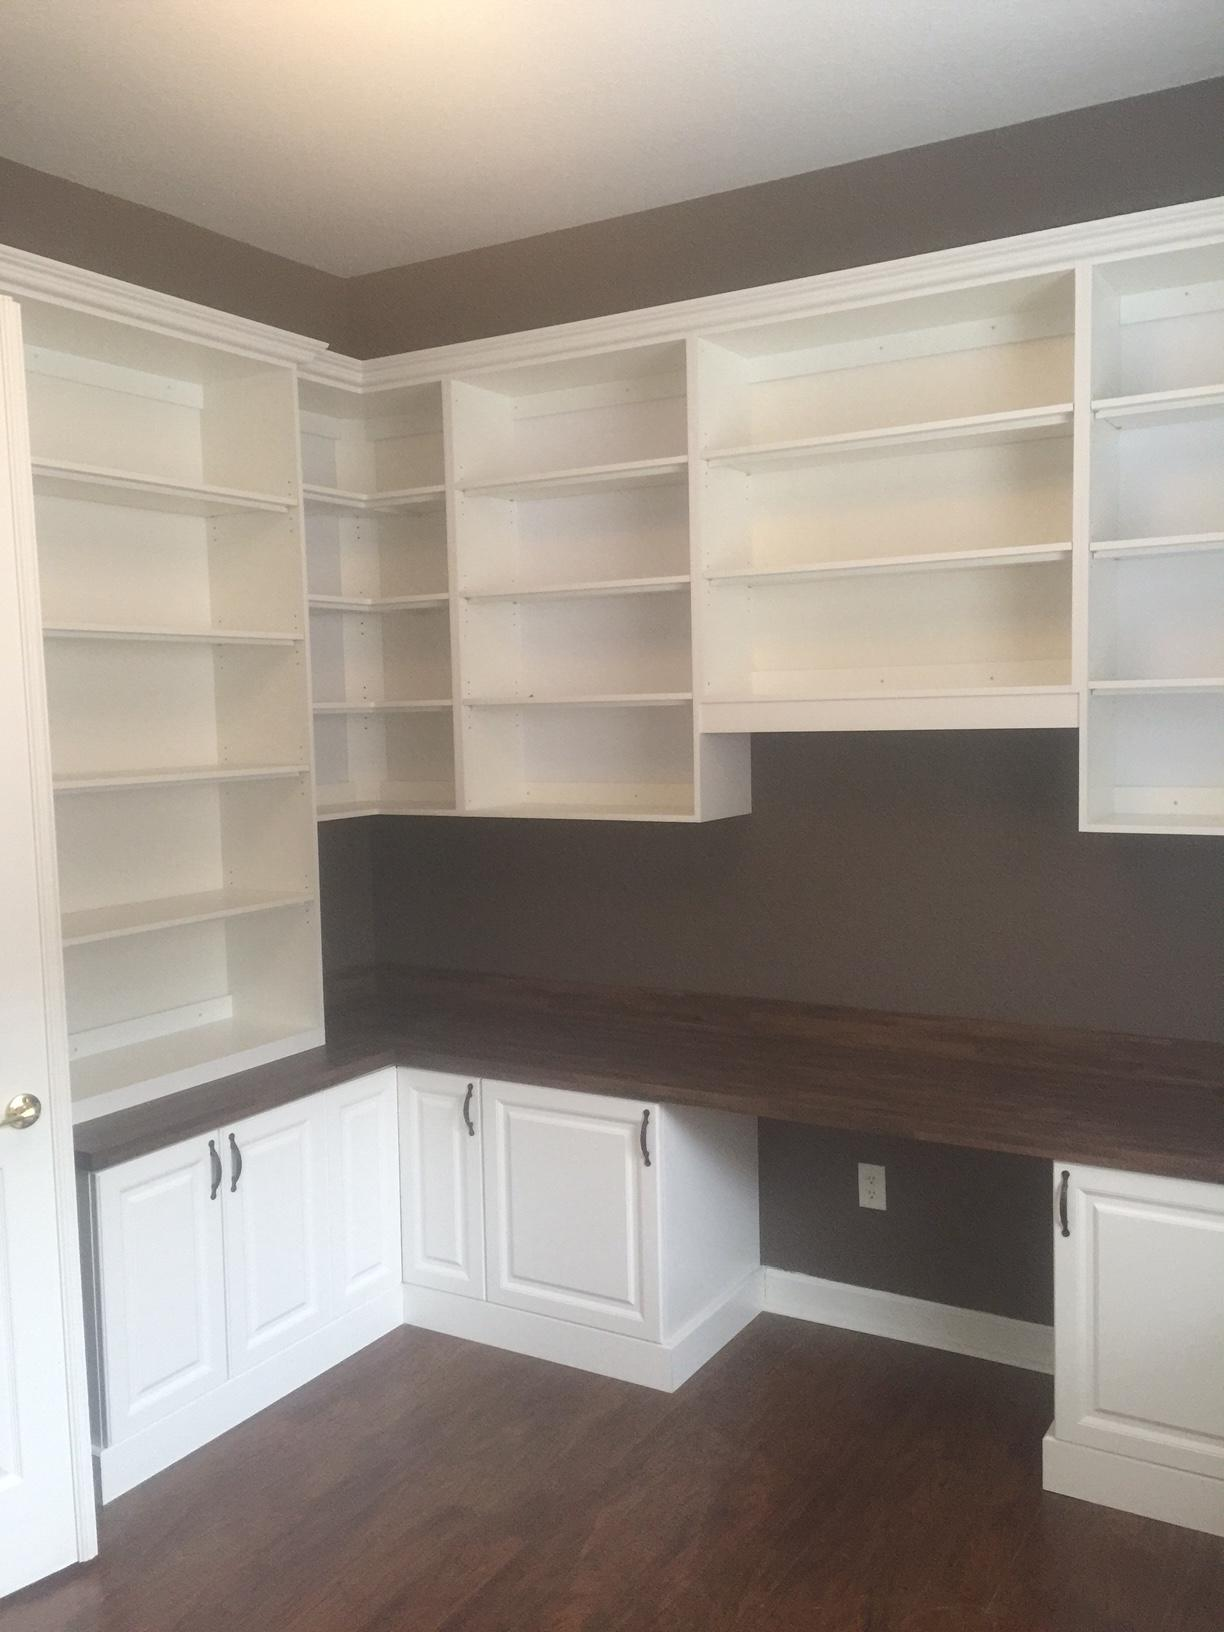 Your Cabinet Source, Inc. image 4